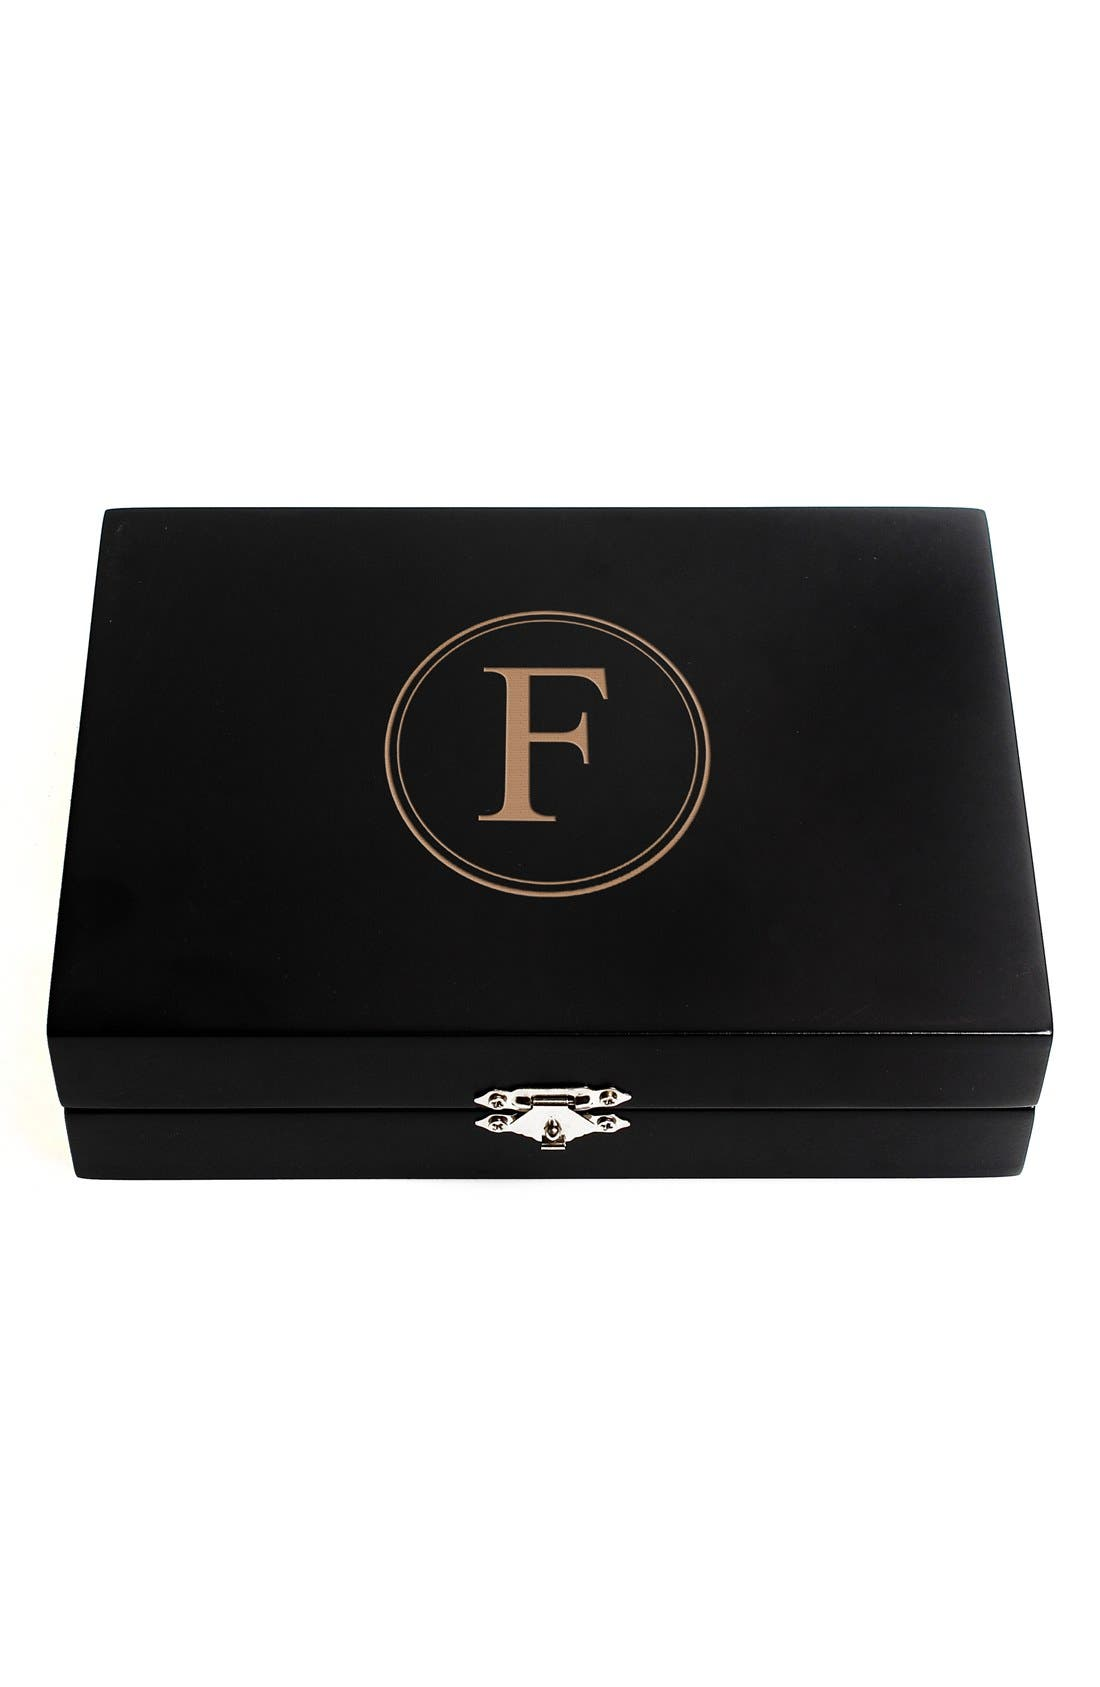 Monogram Wooden Jewelry Box,                             Main thumbnail 8, color,